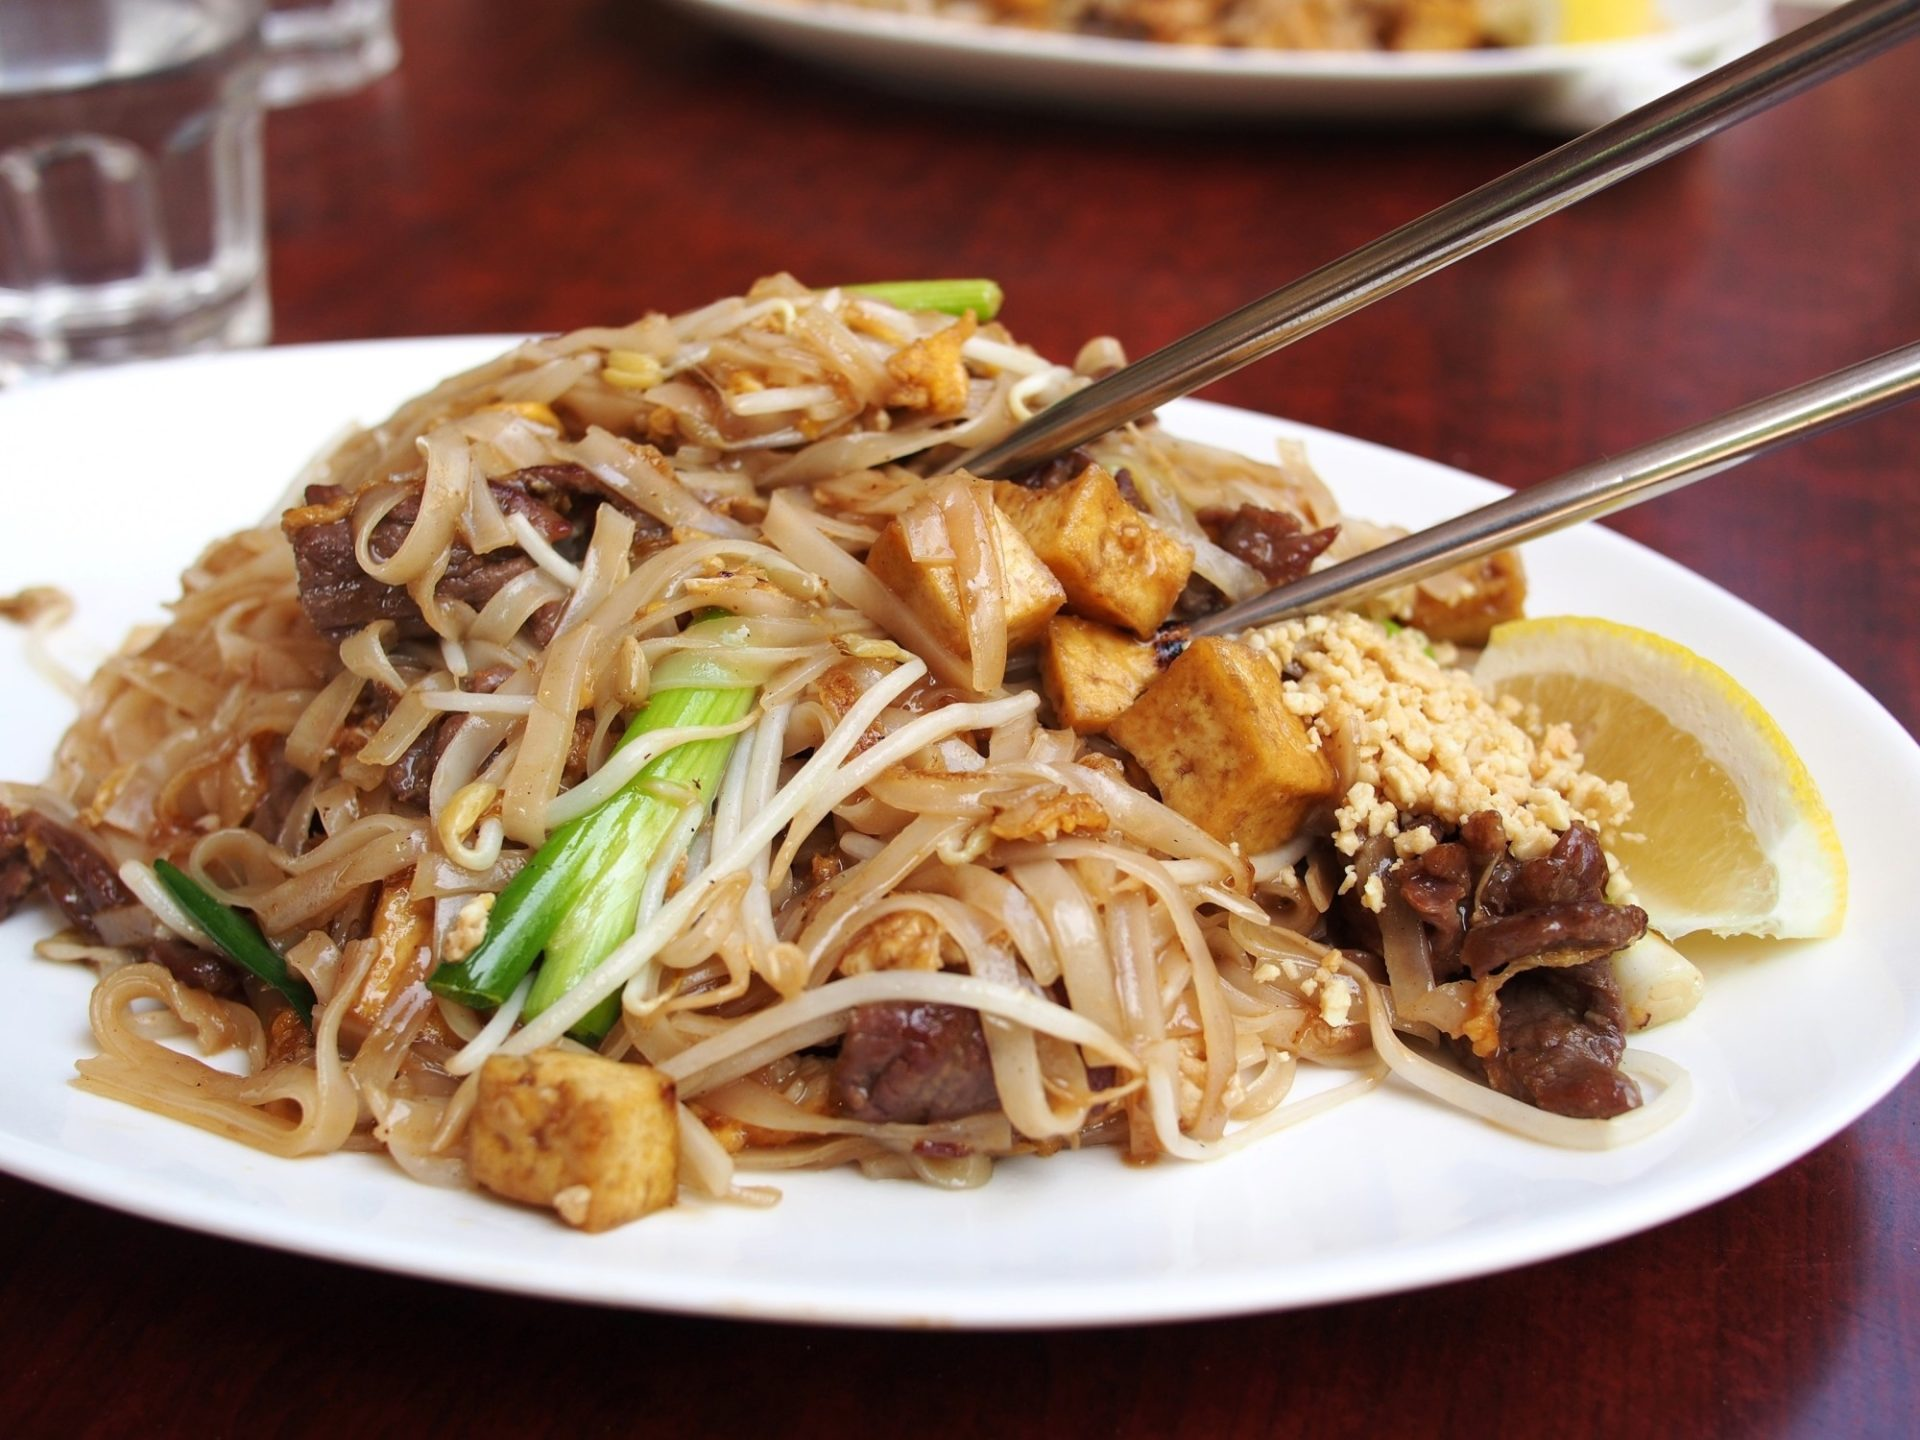 Dinner Done Right: The 6 Best Thai Dishes to Order at a Restaurant